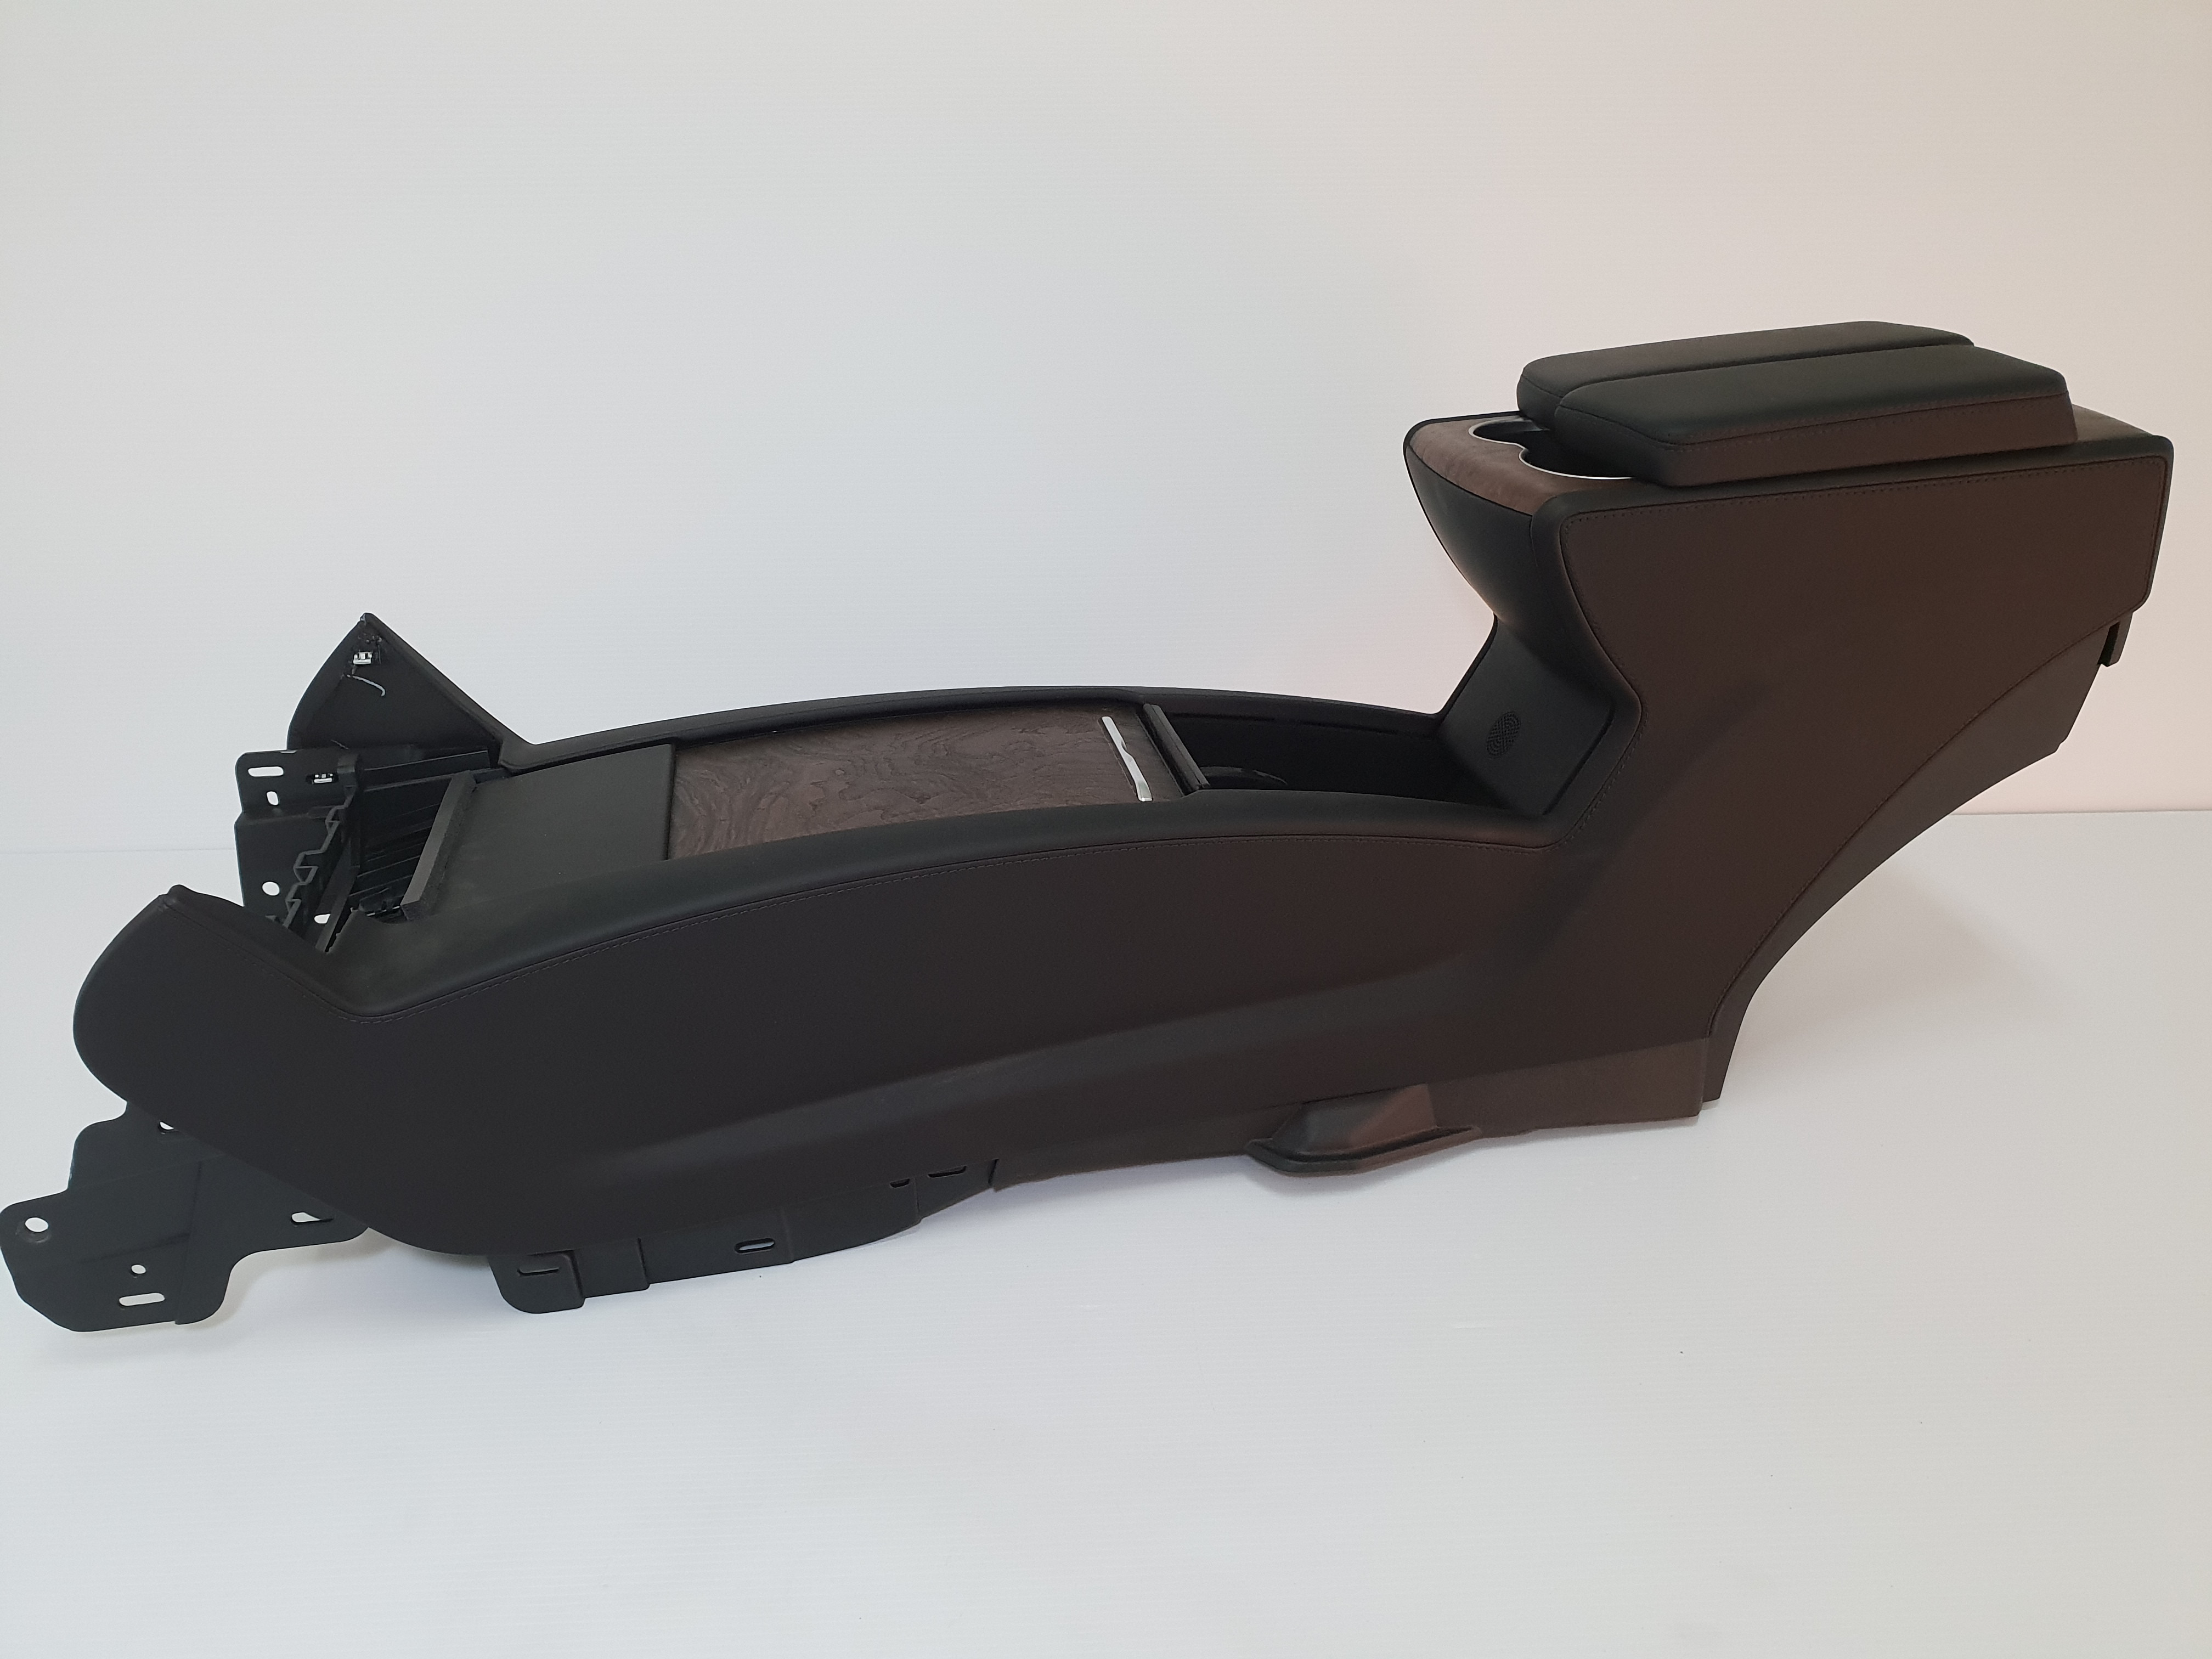 Tesla Model X 2017 - Center Console Assembly